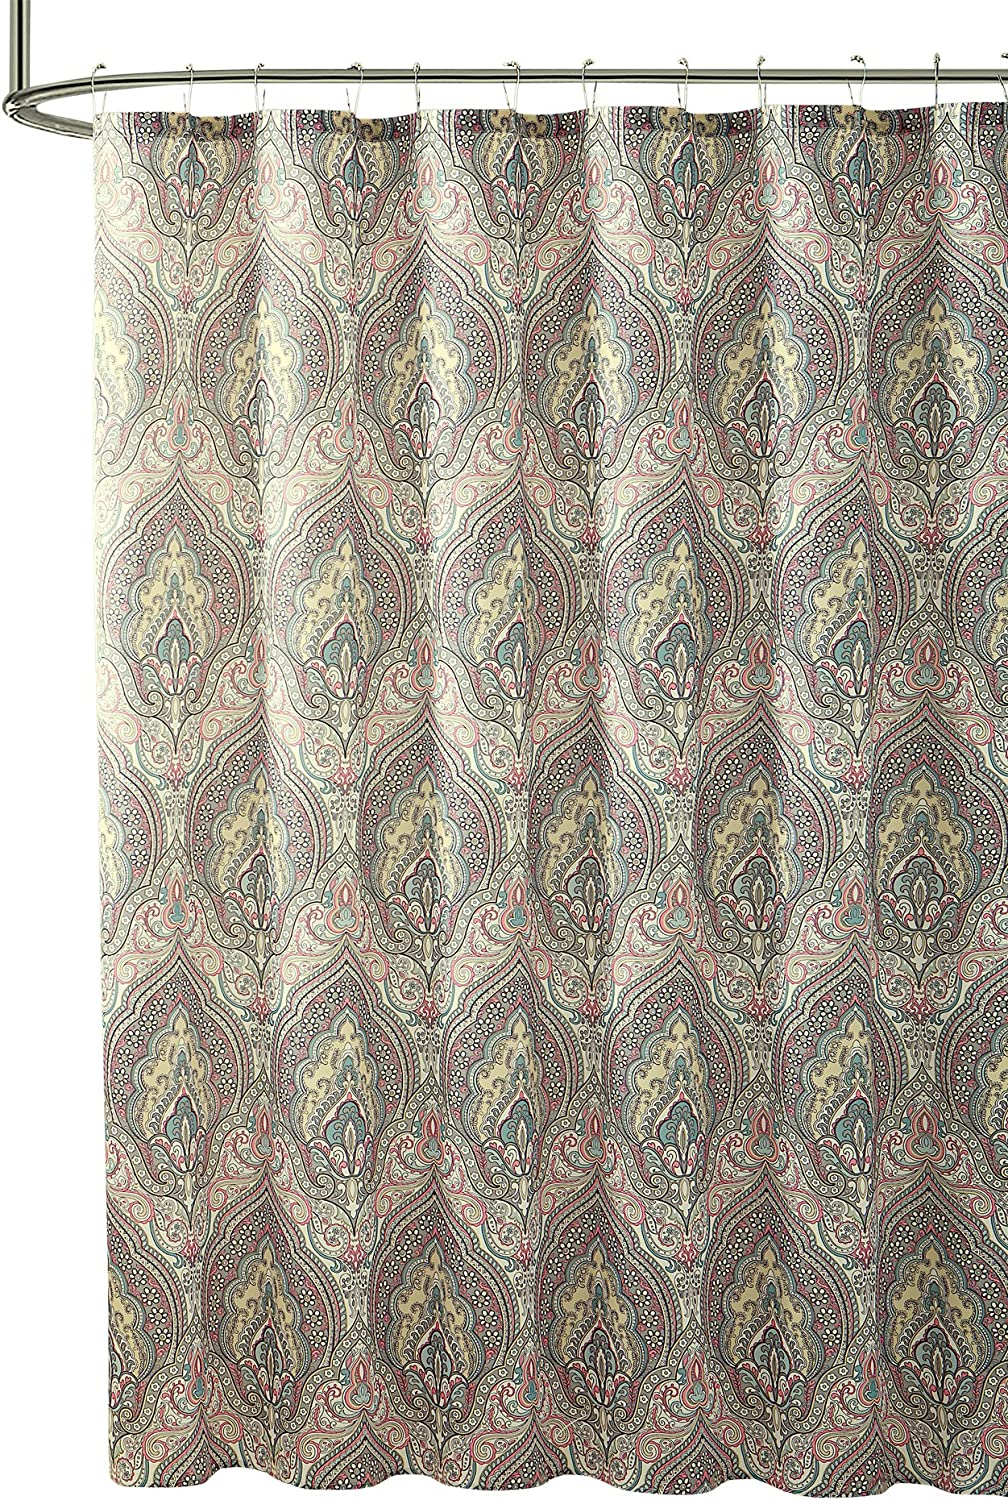 """Hudson & Essex Grey Coral Yellow Teal Cloth Fabric Shower Curtain: Floral Paisley Print Design, 72"""" x 72"""" inch"""